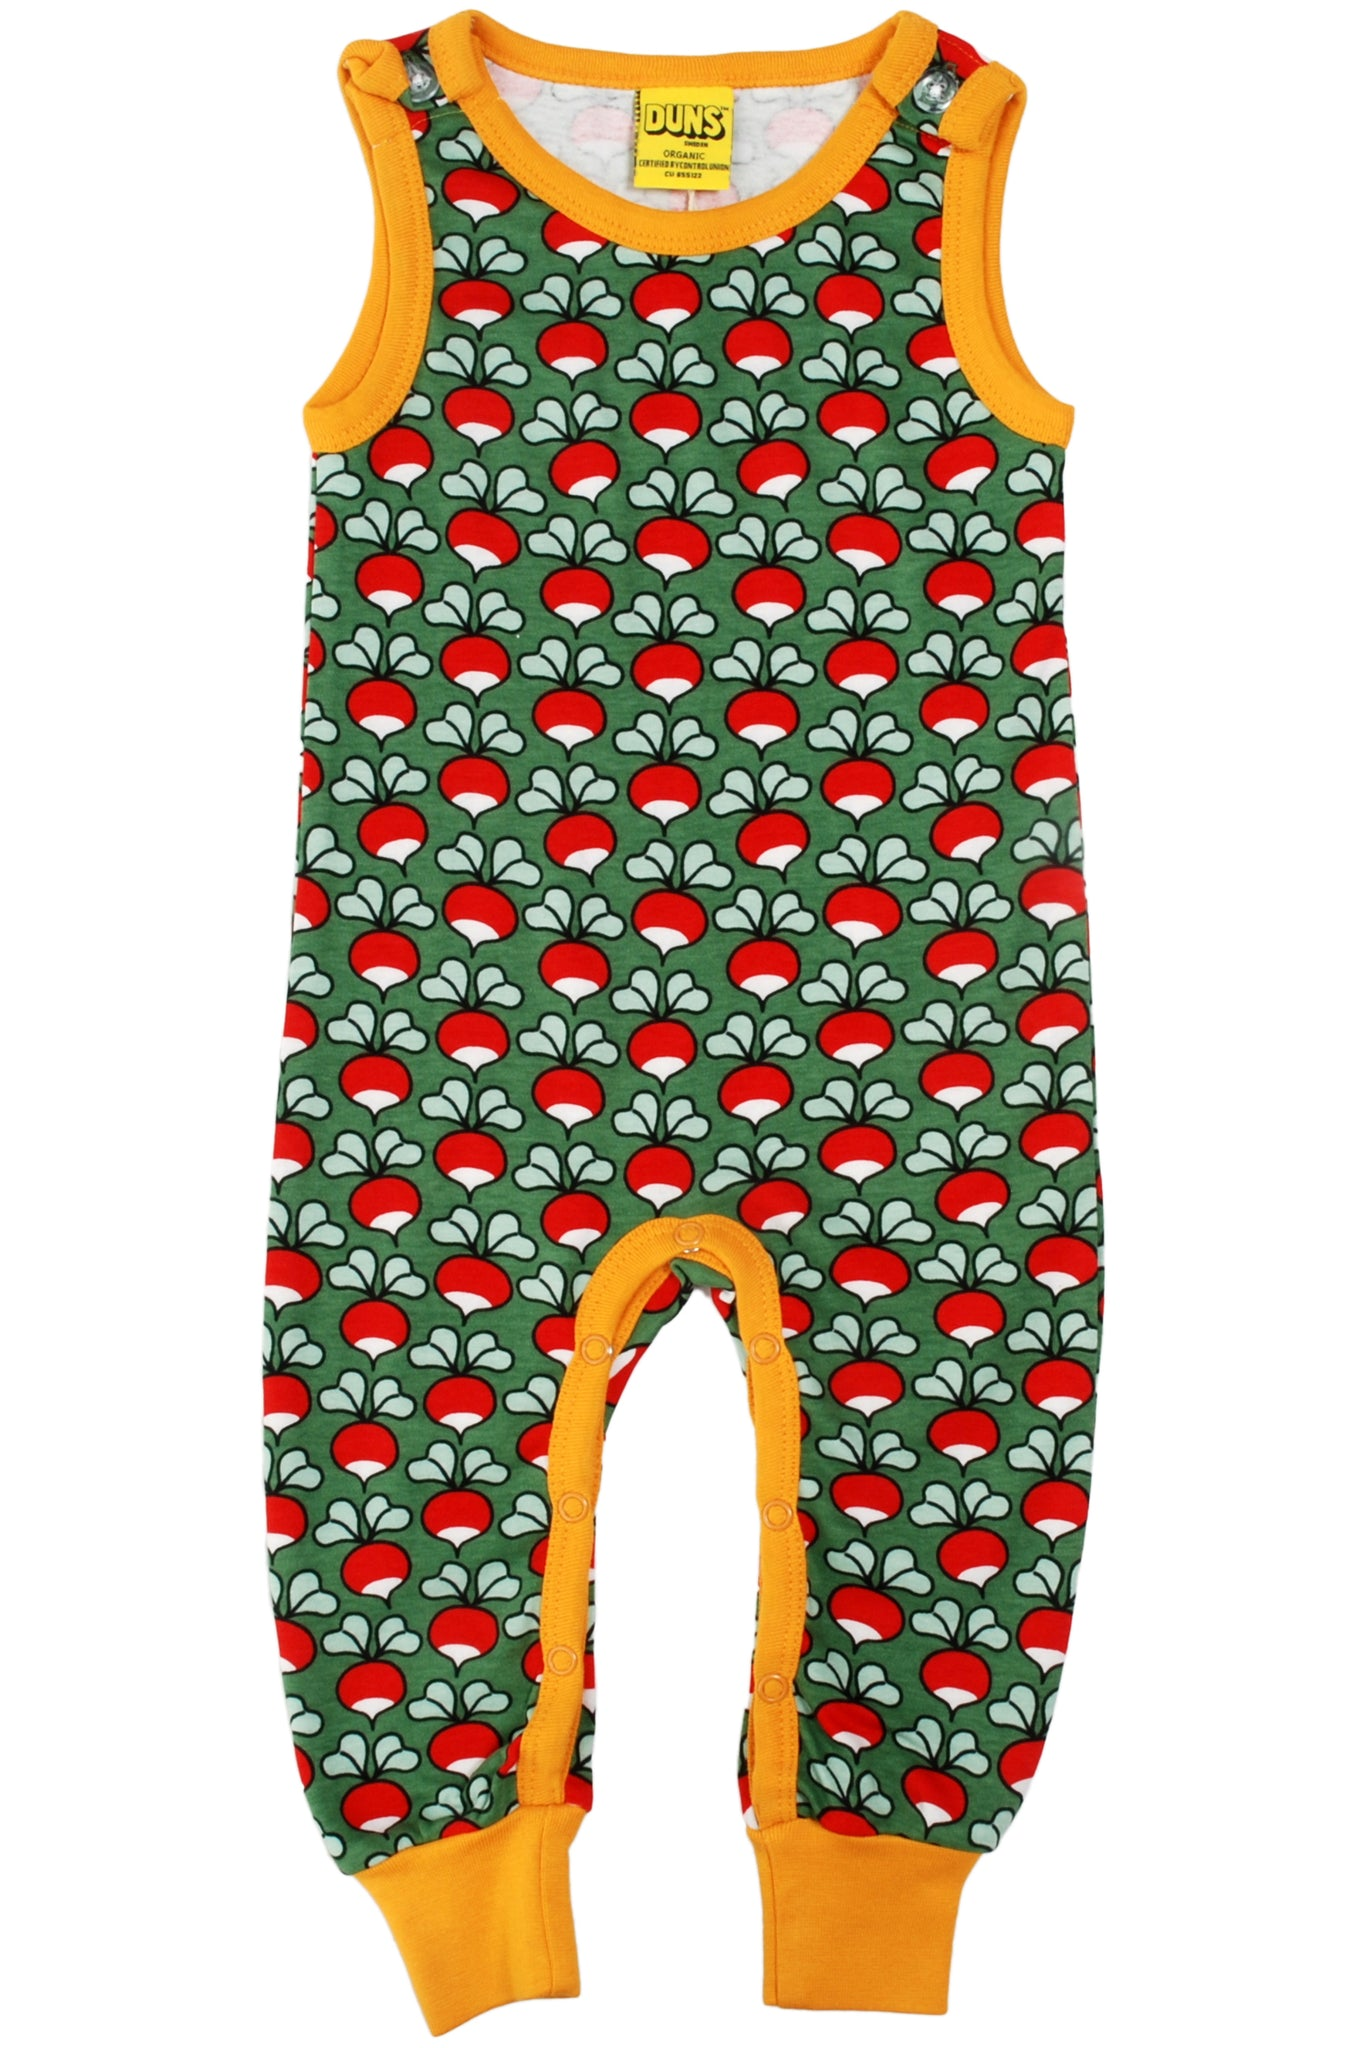 Dungaree Radishes - Dark Green - DUNS Fashion - Snugglefox